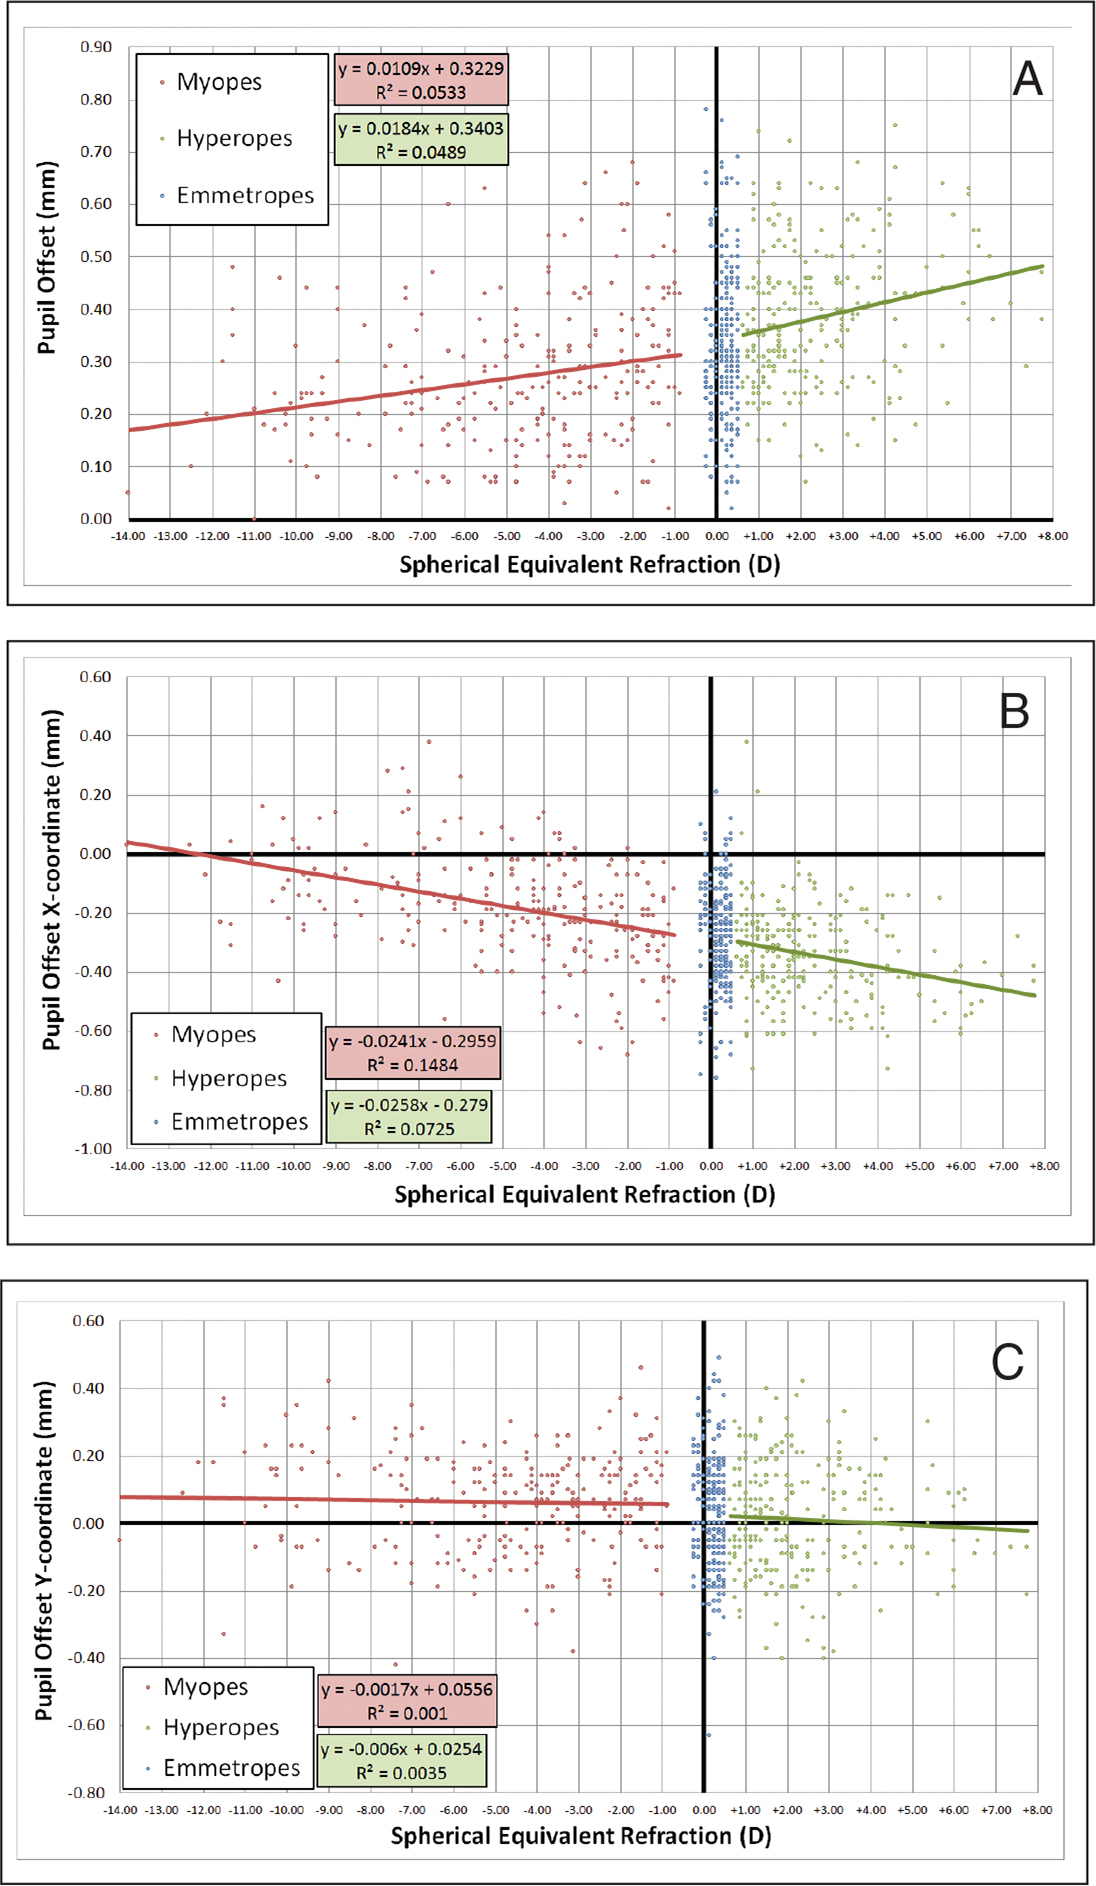 (A) Comparison of pupil offset magnitude and spherical equivalent for the myopic, emmetropic, and hyperopic groups. A linear regression line shows an increase in pupil offset from myopia of −14.00 diopters (D) to hyperopia of +7.75 D (P < .001). (B) Comparison of pupil offset in the horizontal meridian (X-component) and spherical equivalent, also showing an increase in pupil offset from high myopia to high hyperopia (P < .001). (C) Comparison of pupil offset in the vertical meridian (Y-component) and spherical equivalent, but this was not statistically significant for the myopic (P = .056) or hyperopic (P = .346) groups.